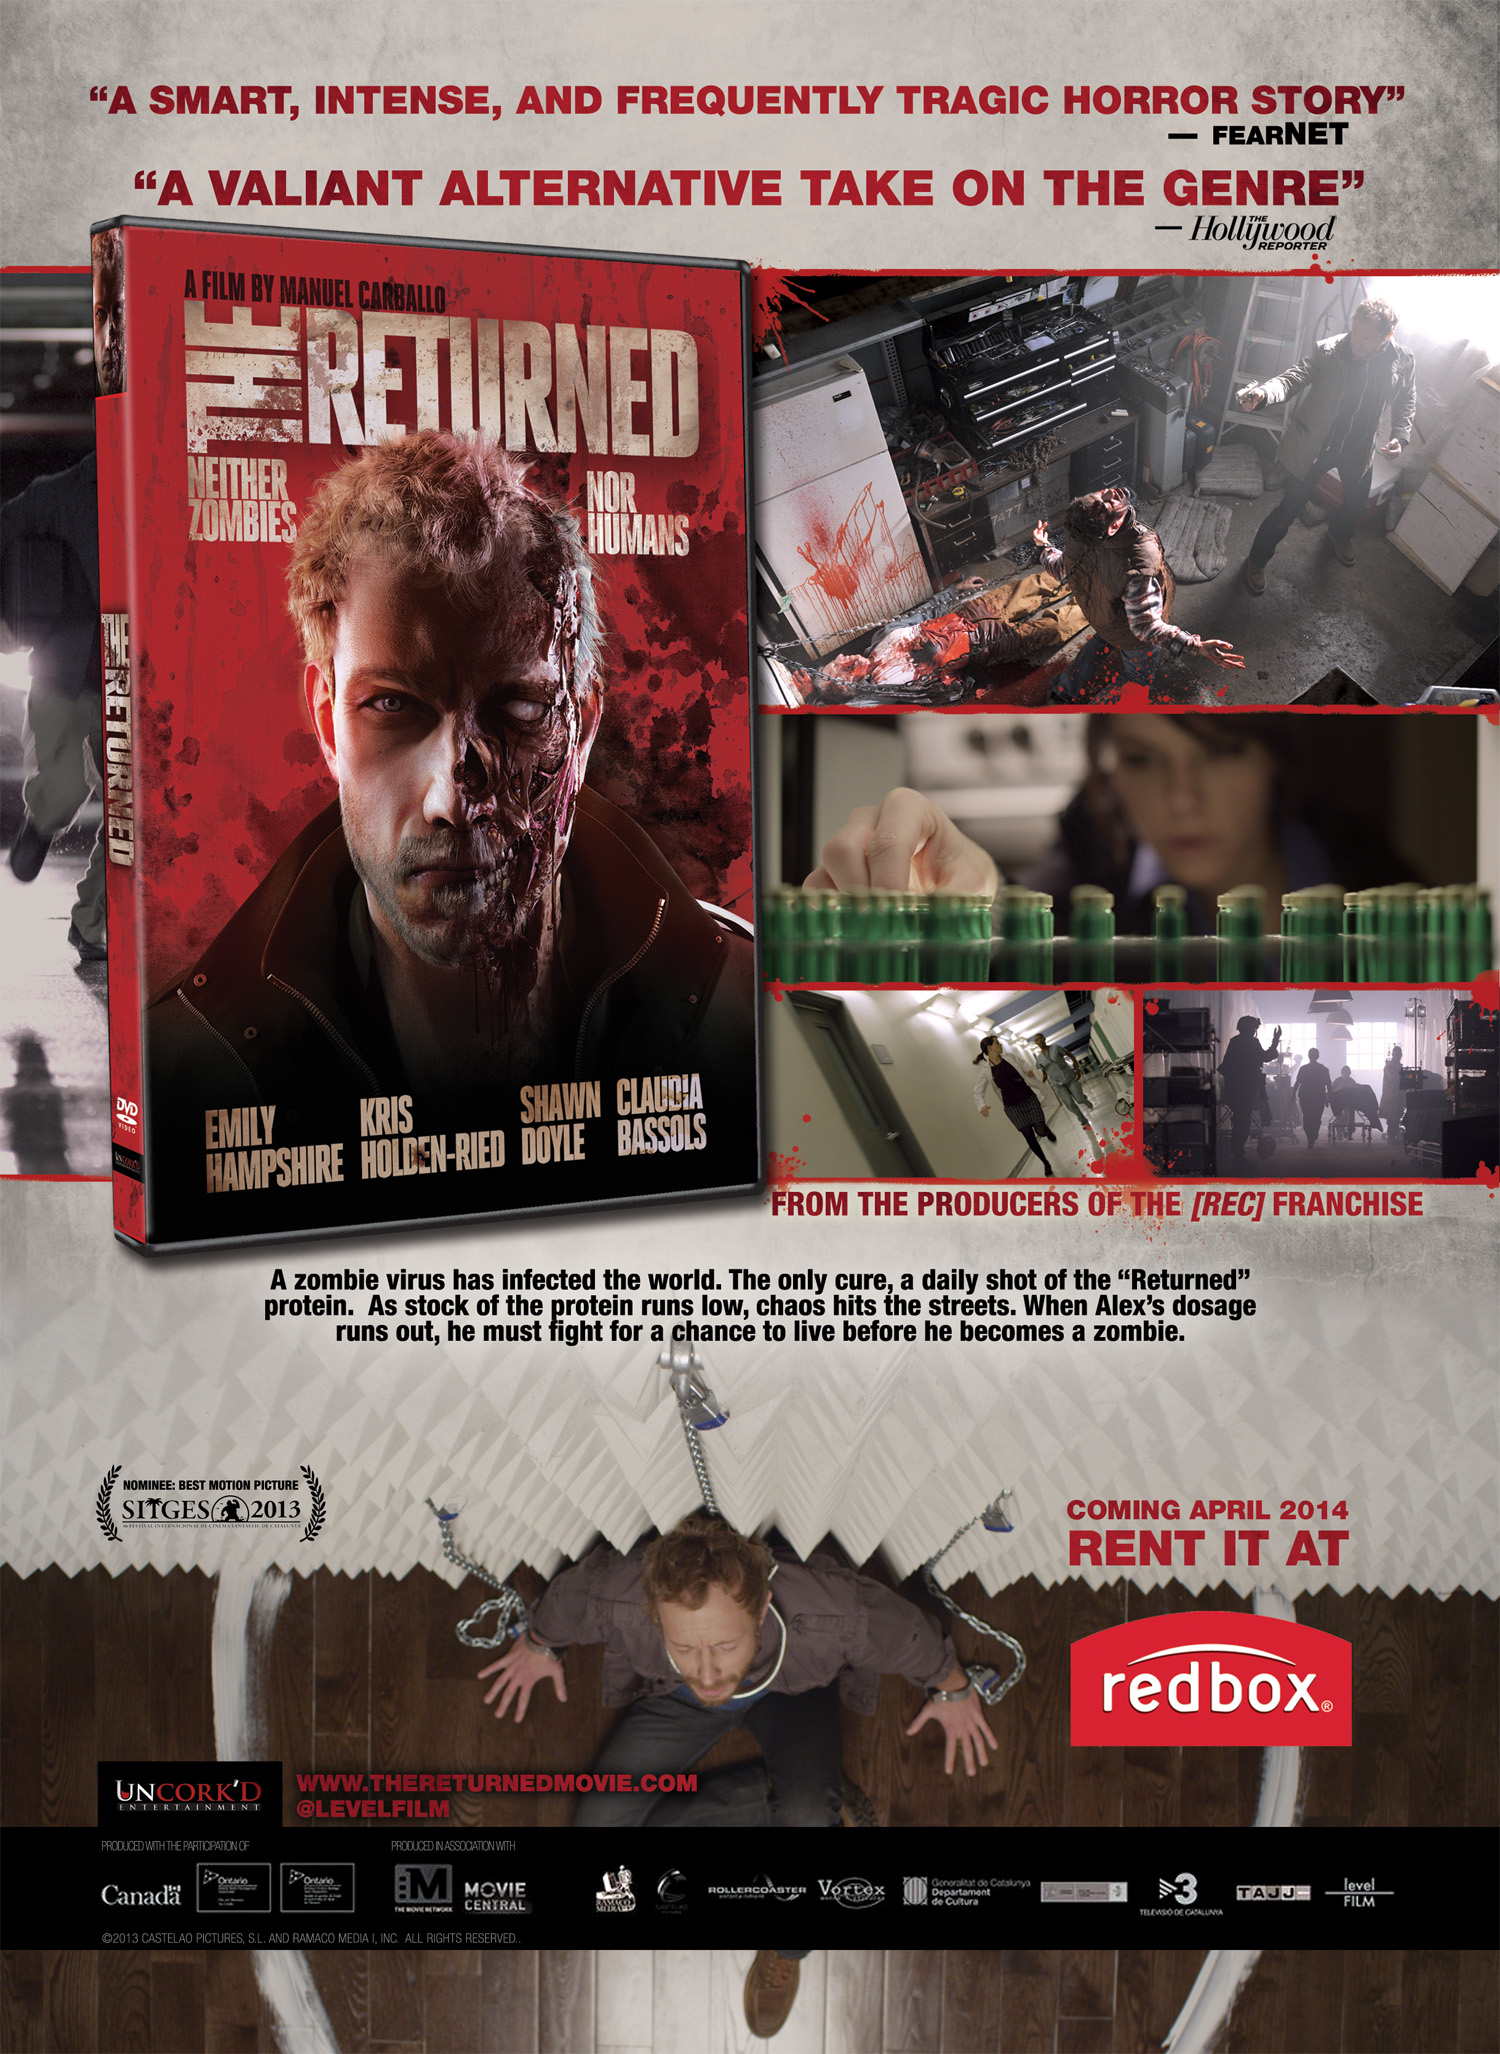 The Returned Ad (Fangoria #332)